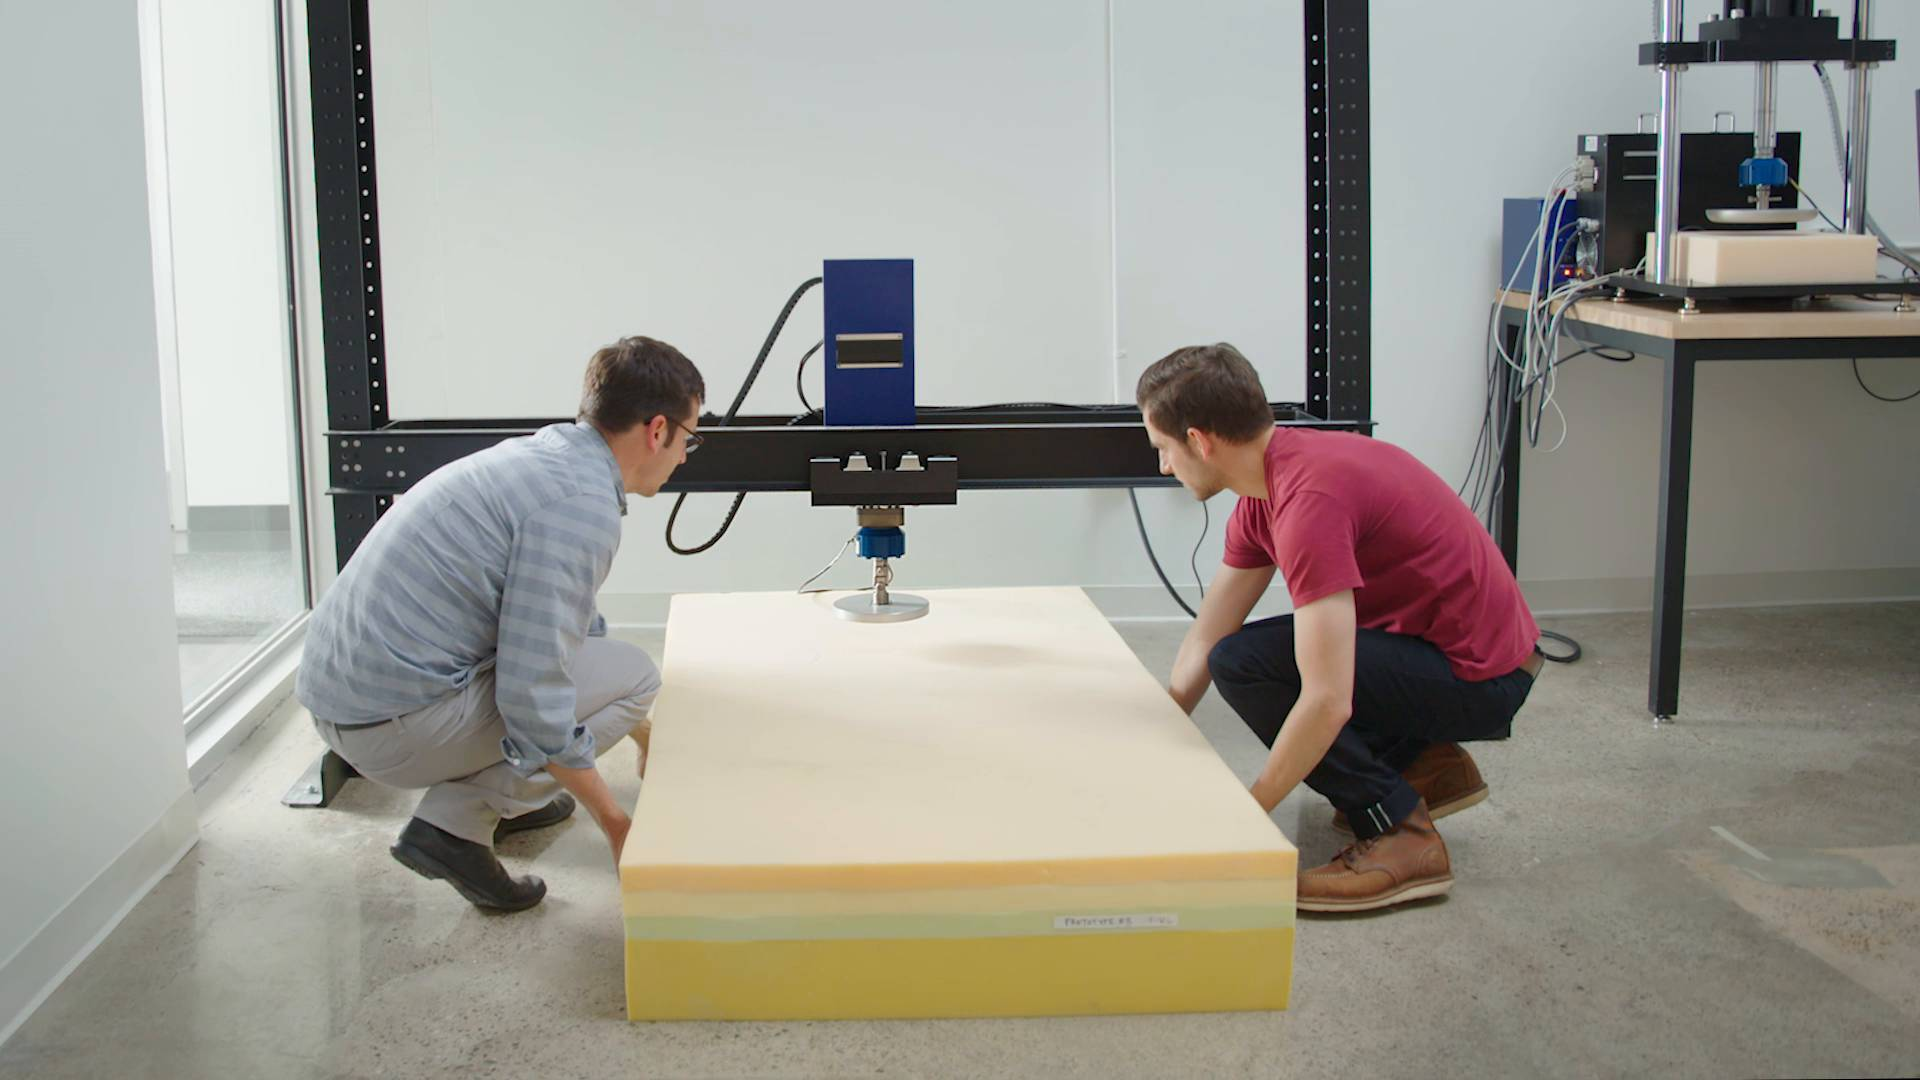 Video showing how the Casper mattress is made